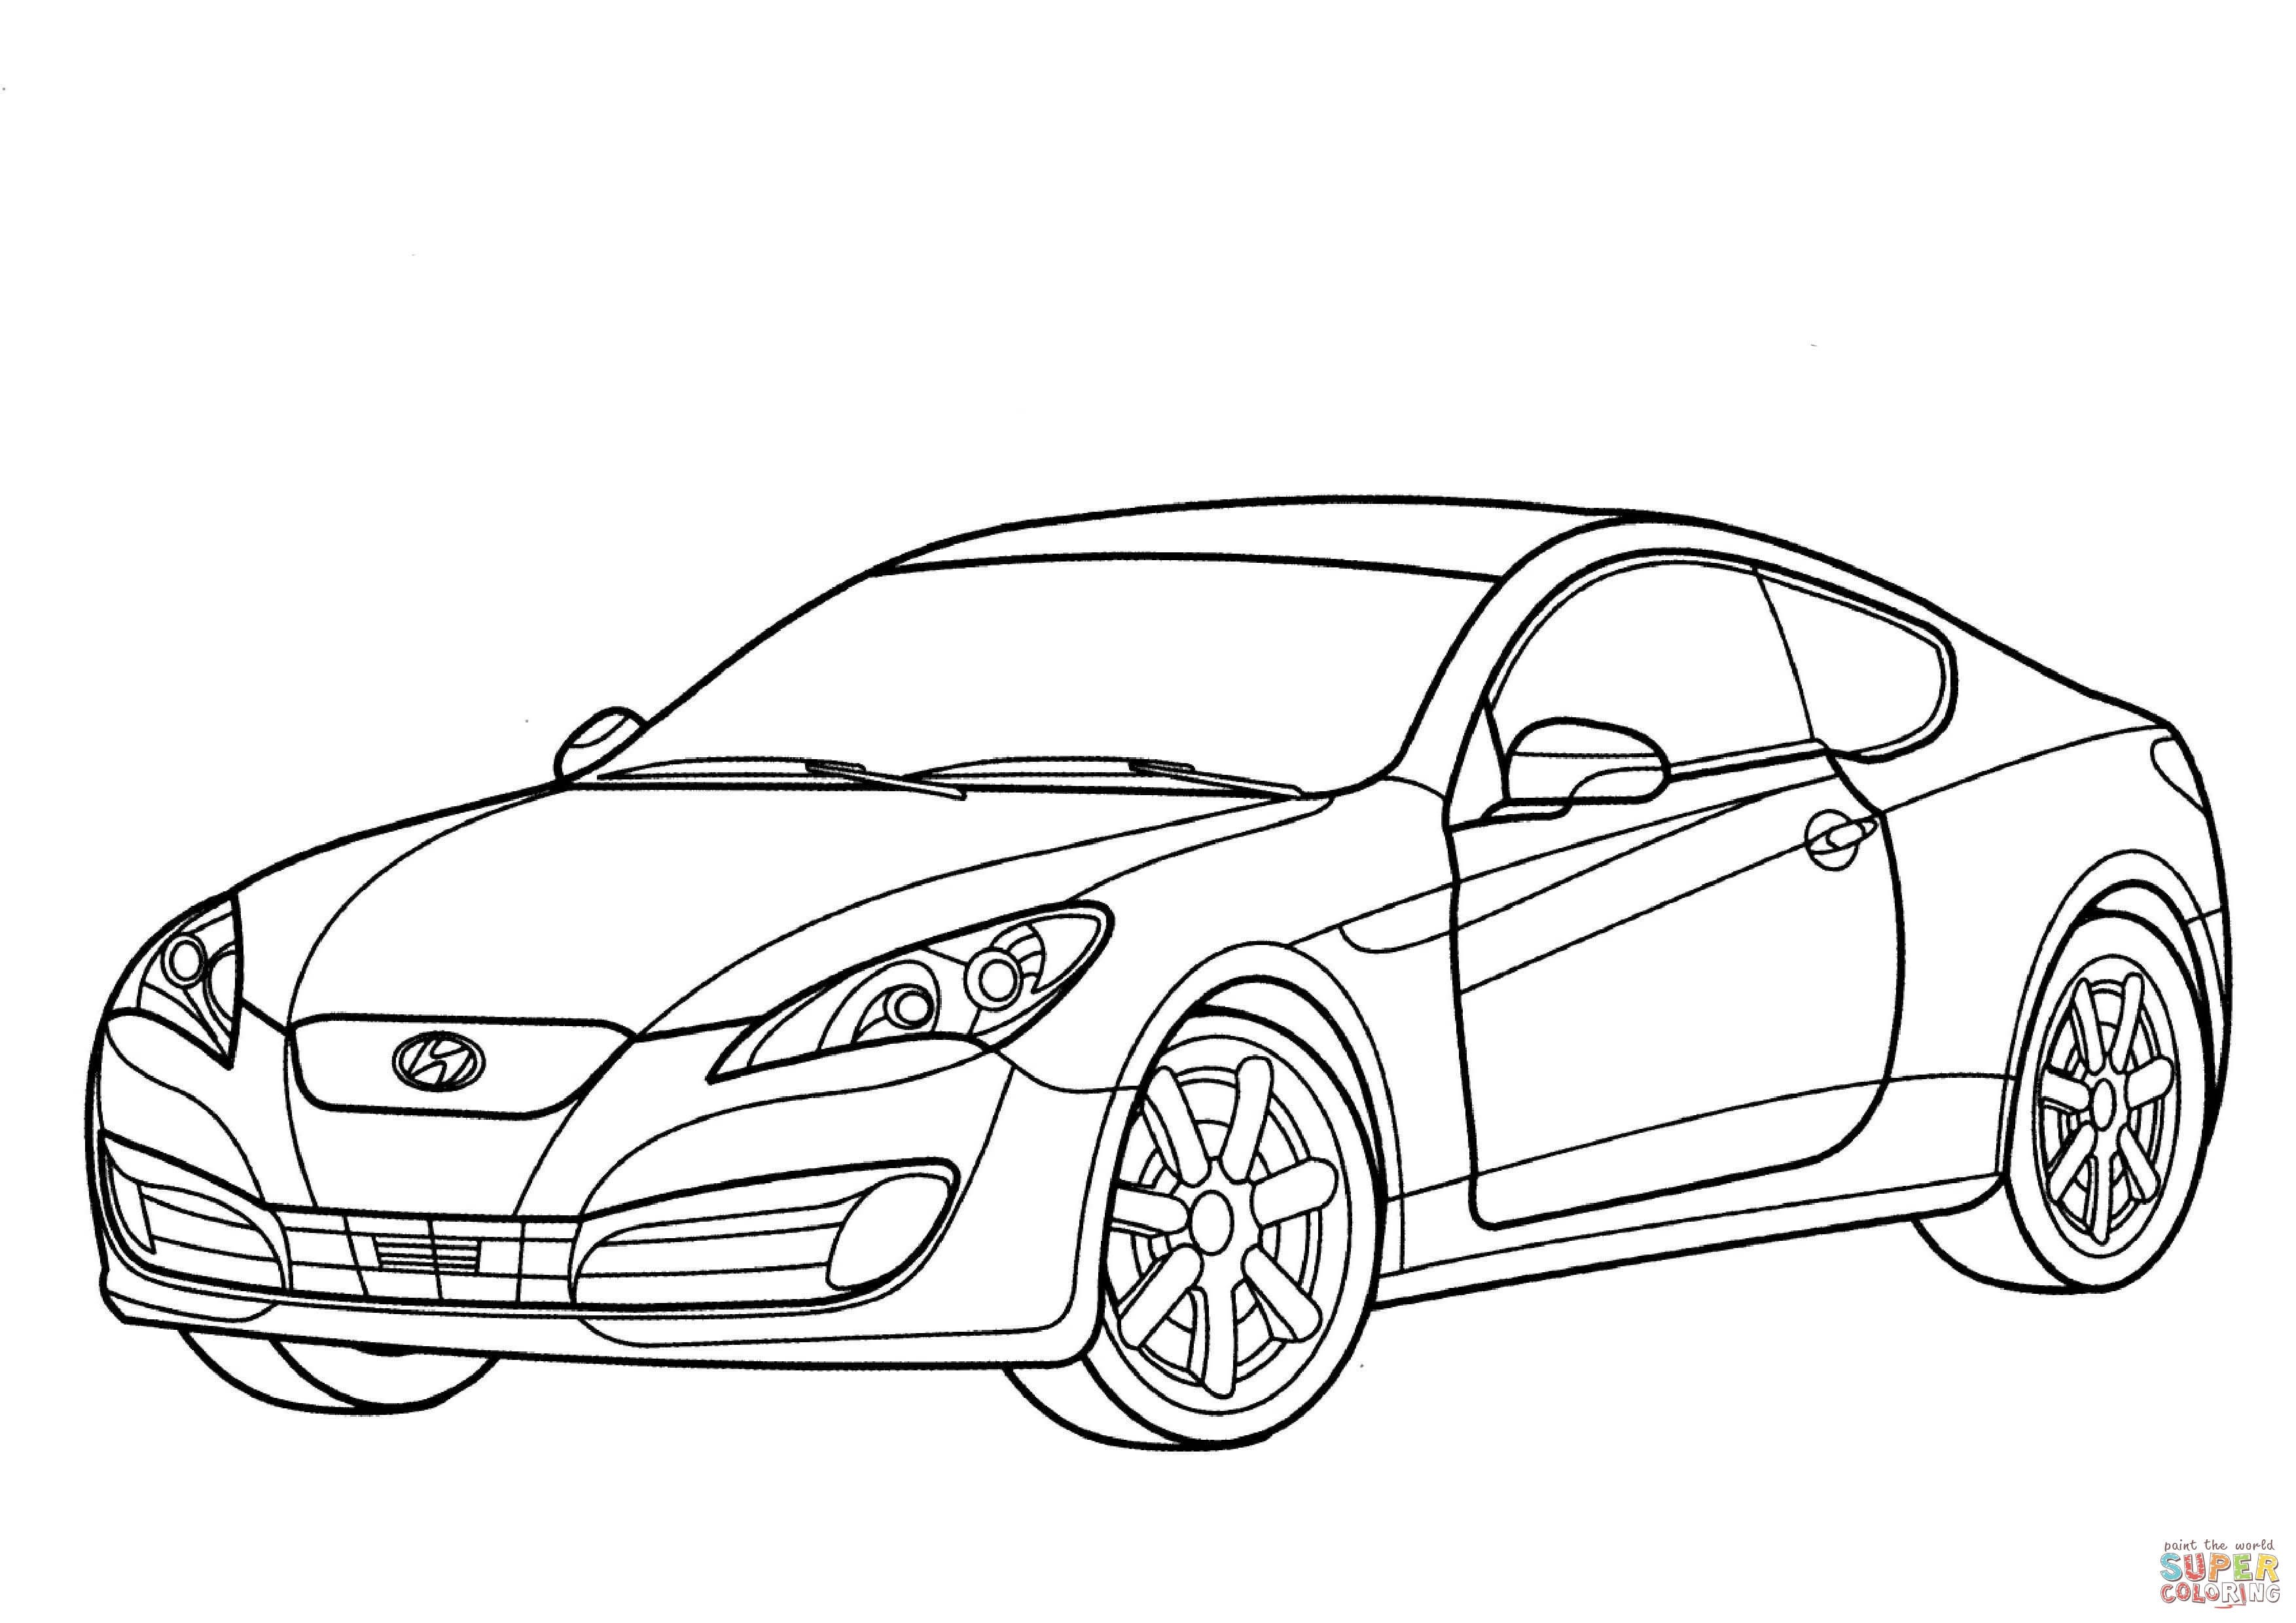 Gtr drawing at getdrawings free for personal use gtr drawing